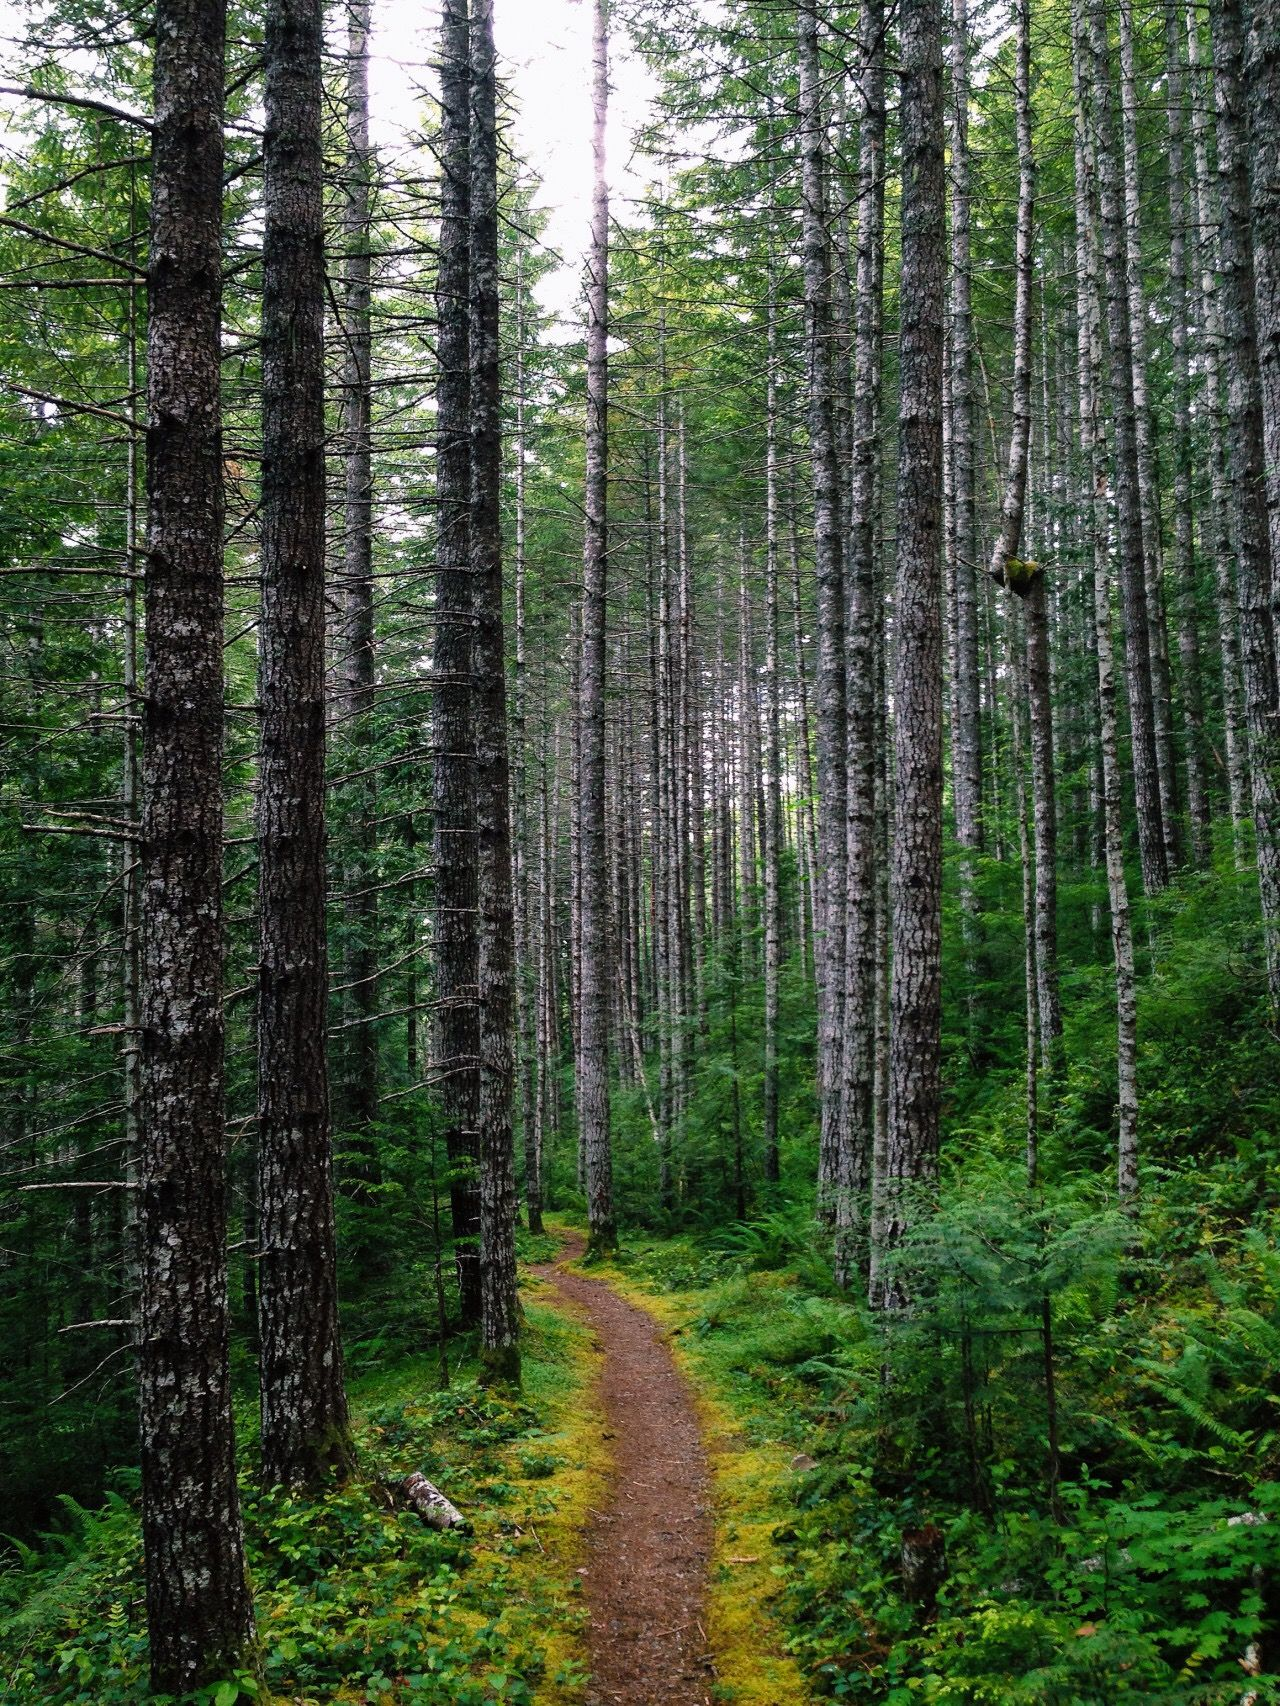 Forest trail location unknown by eric kimberlin cr